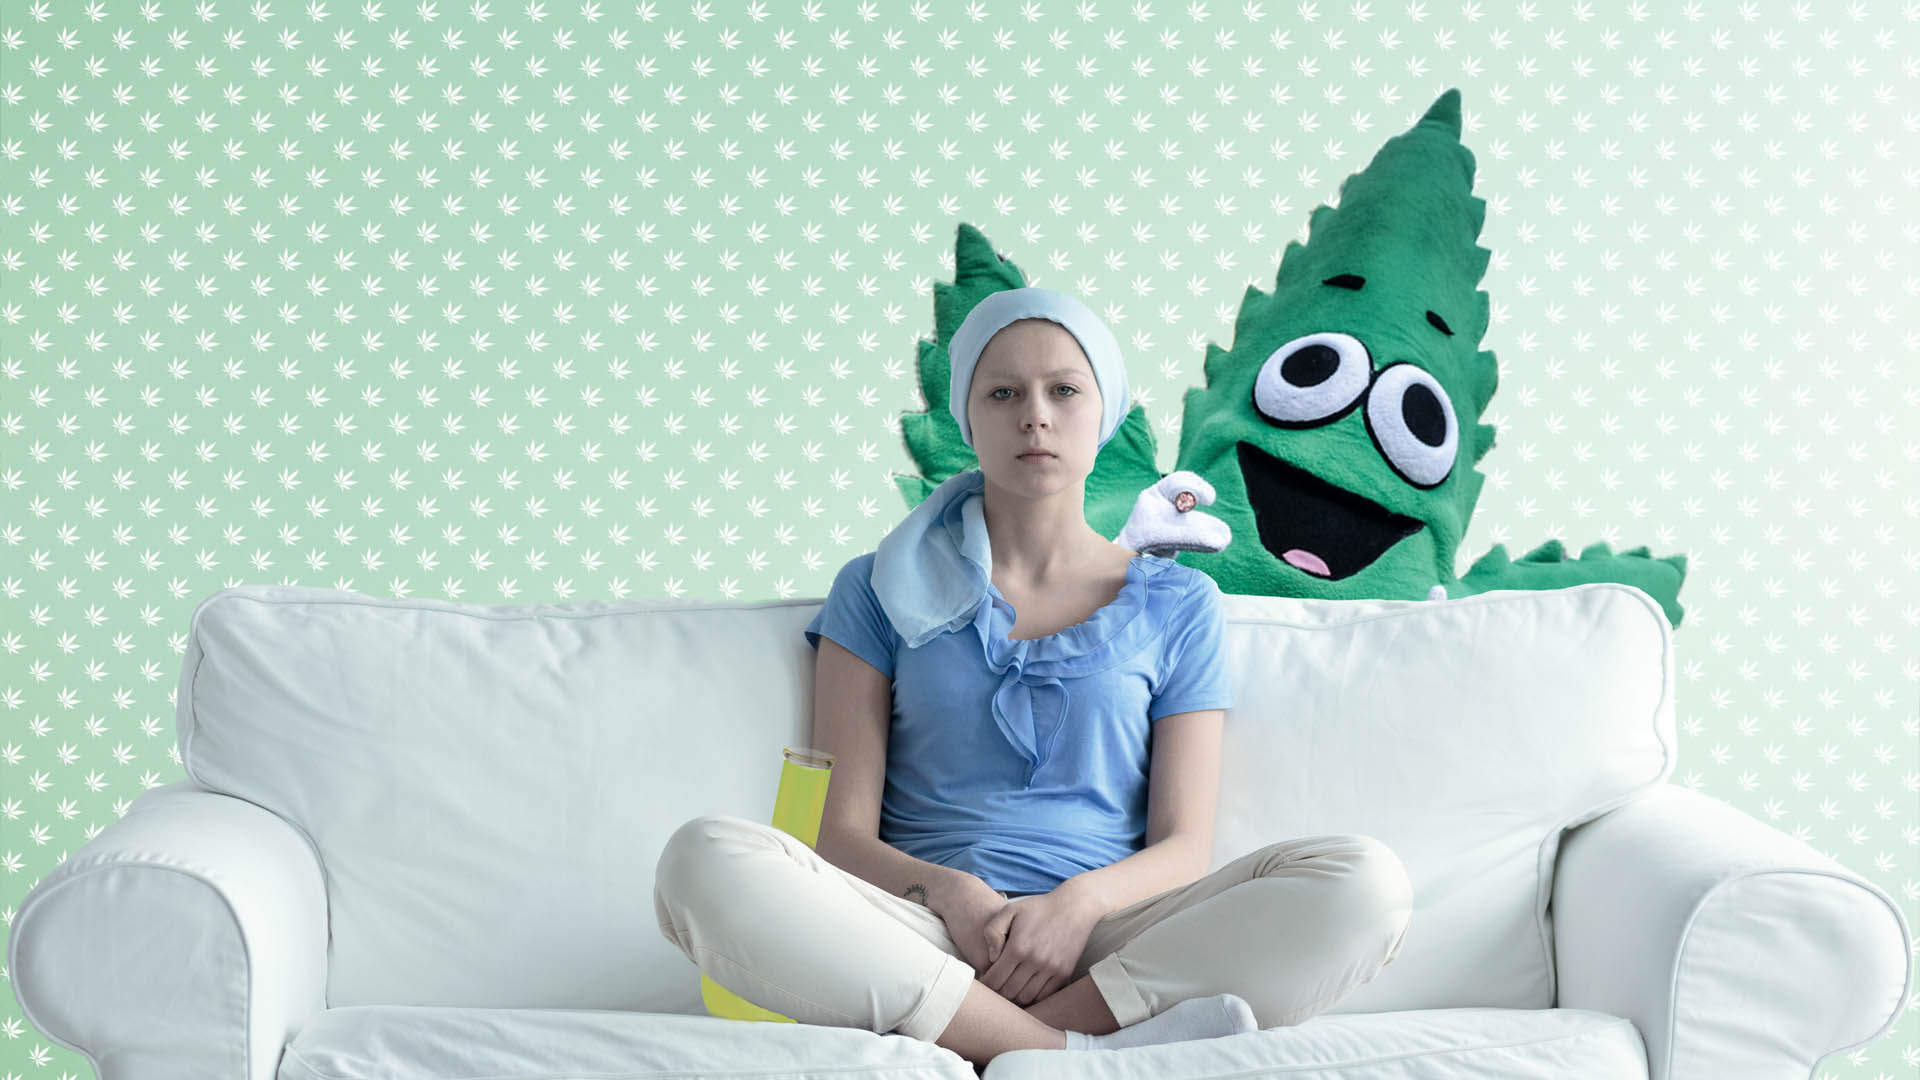 Cannabis and Chemotherapy: The Benefits of Full Plant Medicine